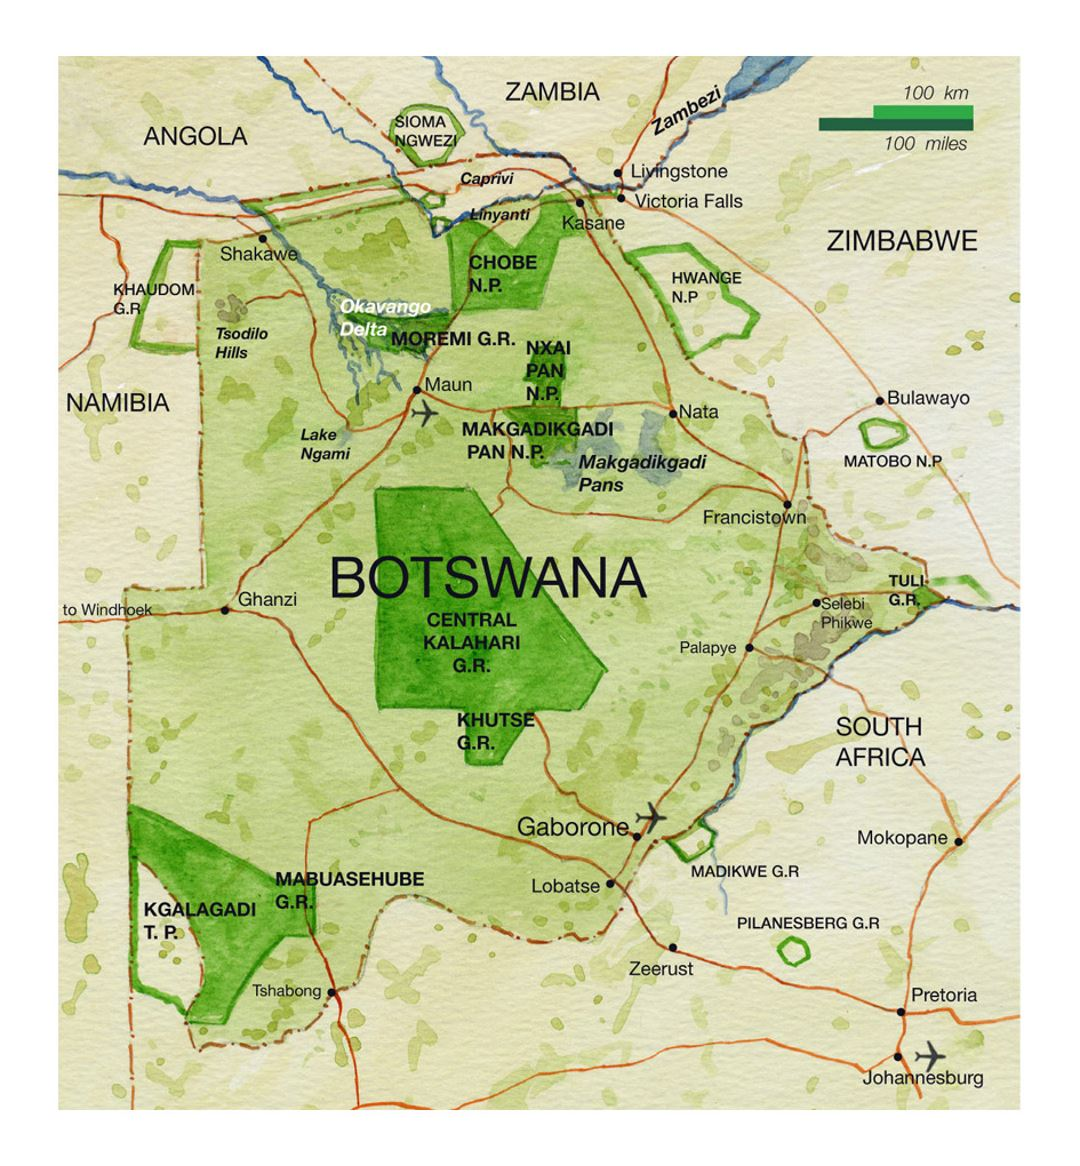 National parks map of Botswana with roads, major cities and airports